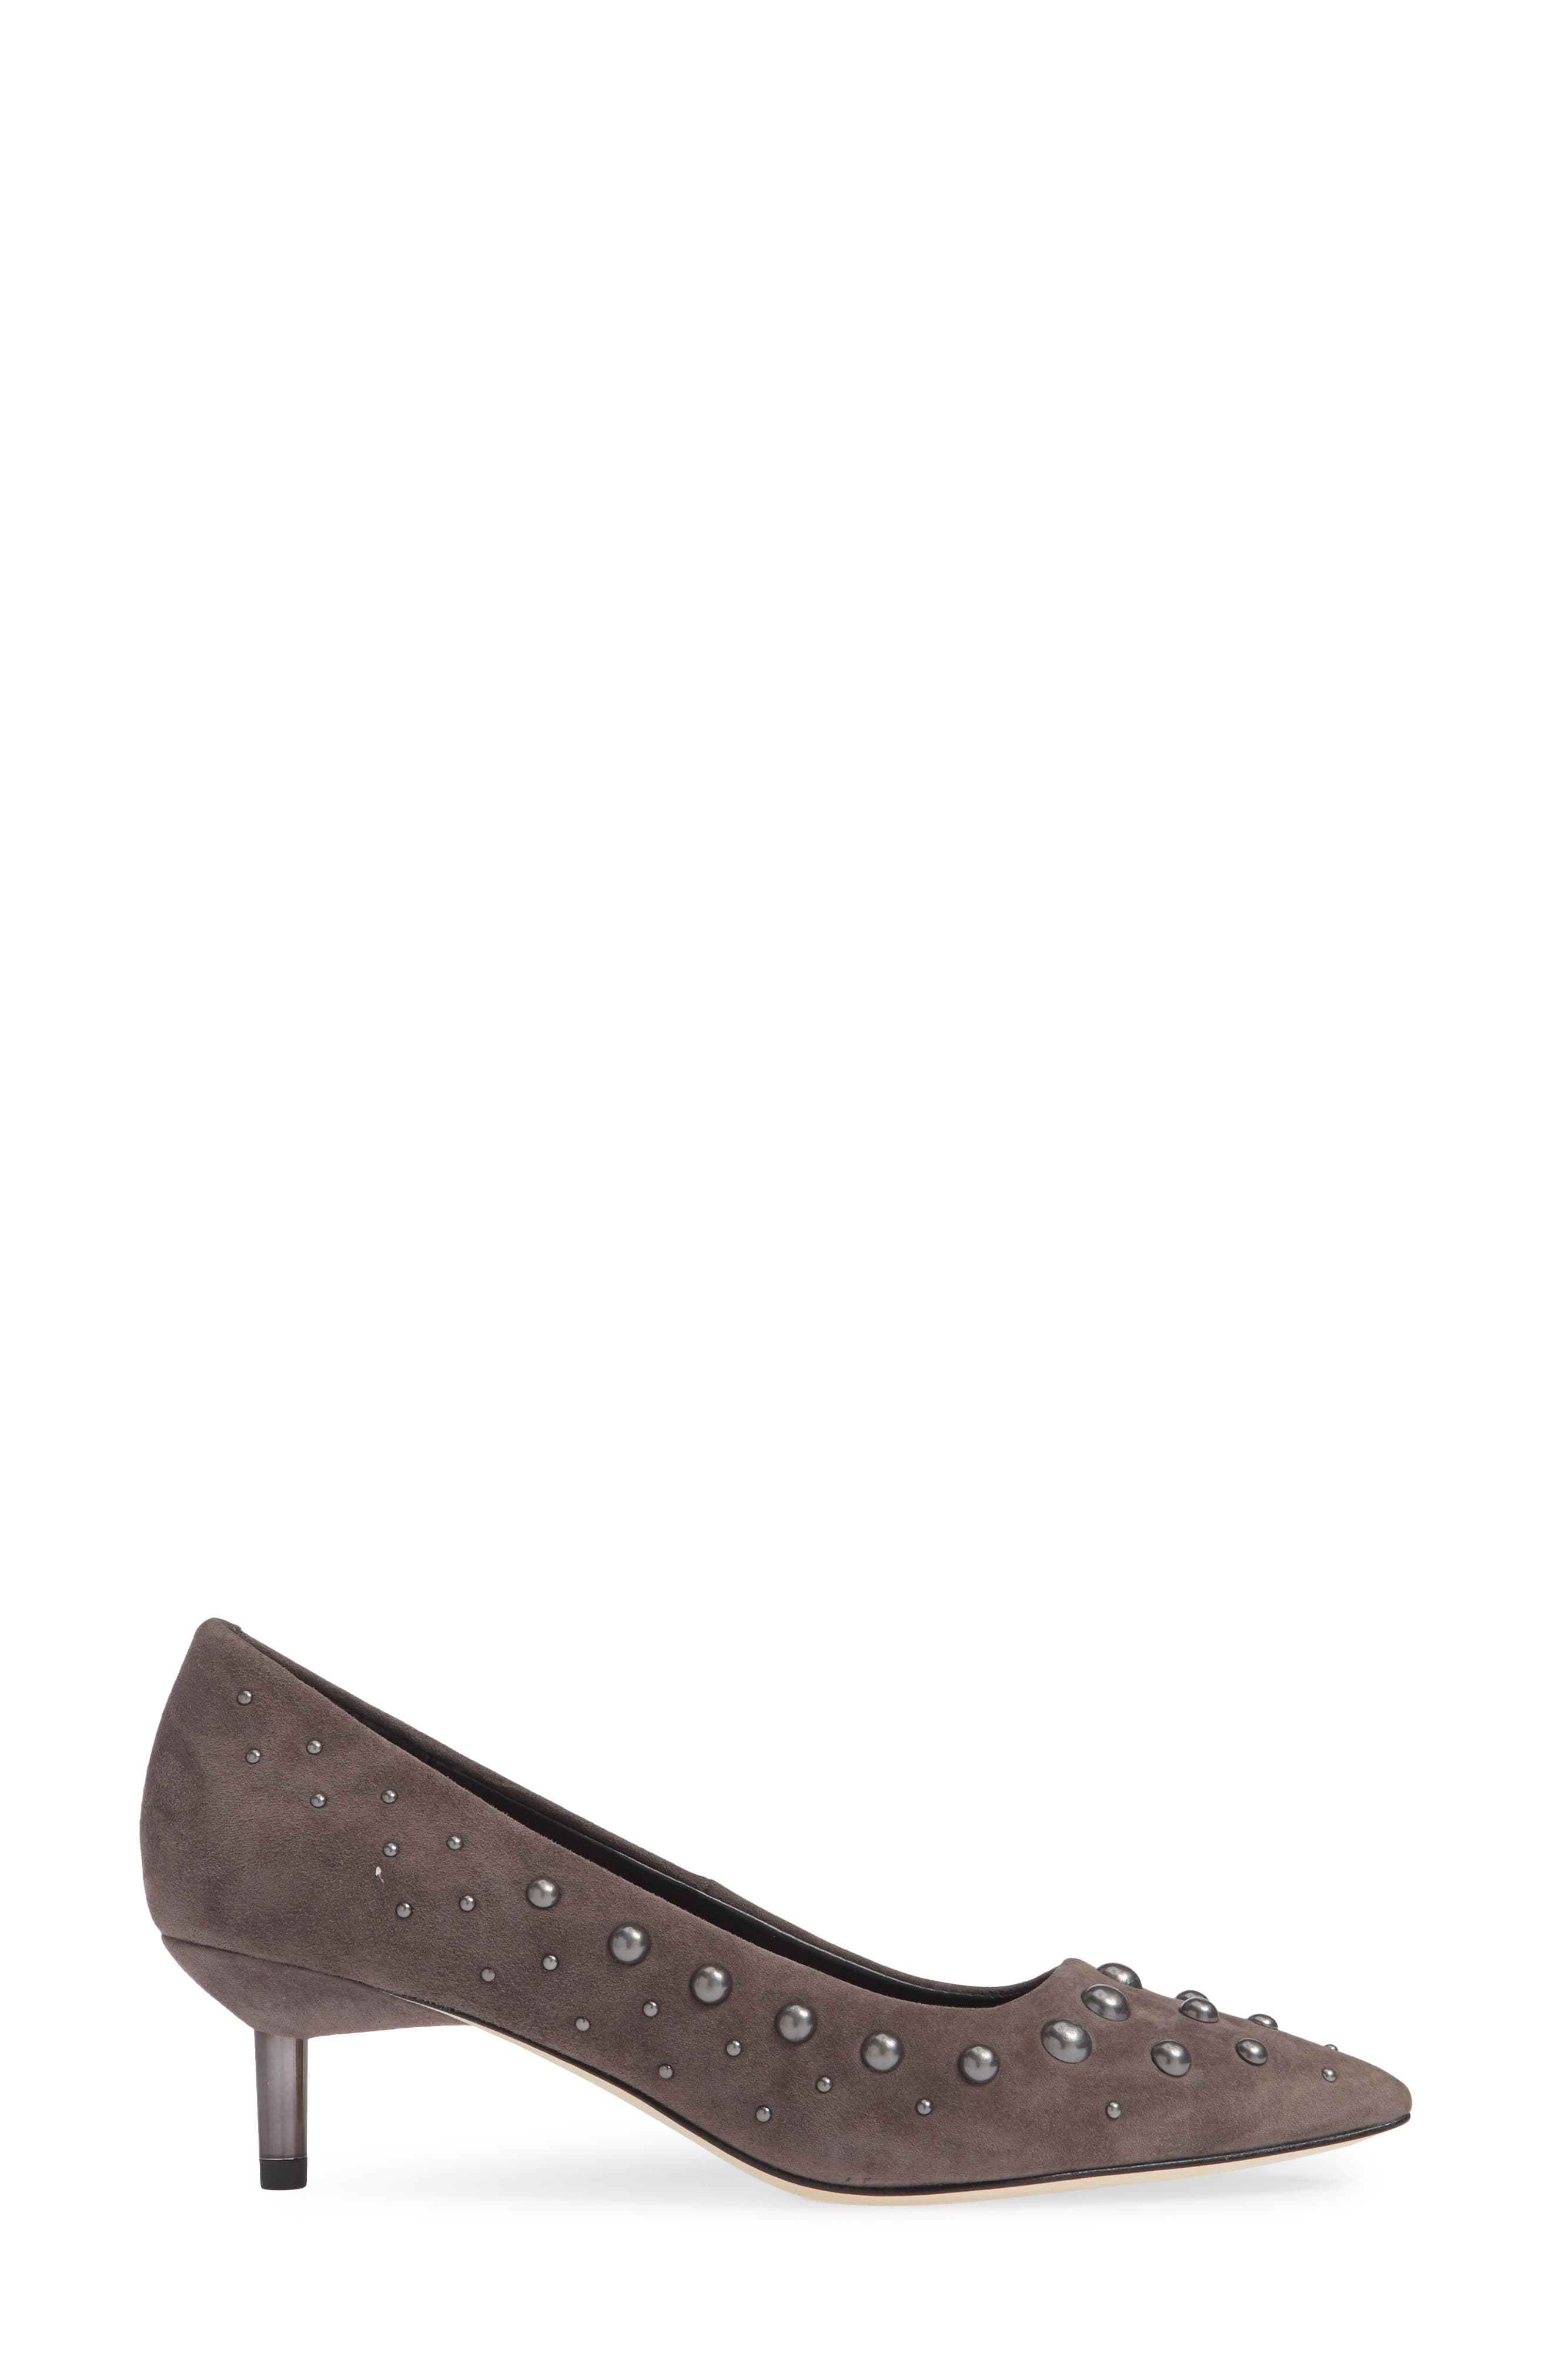 Bazie Studded Pump,                             Alternate thumbnail 3, color,                             GREY SUEDE